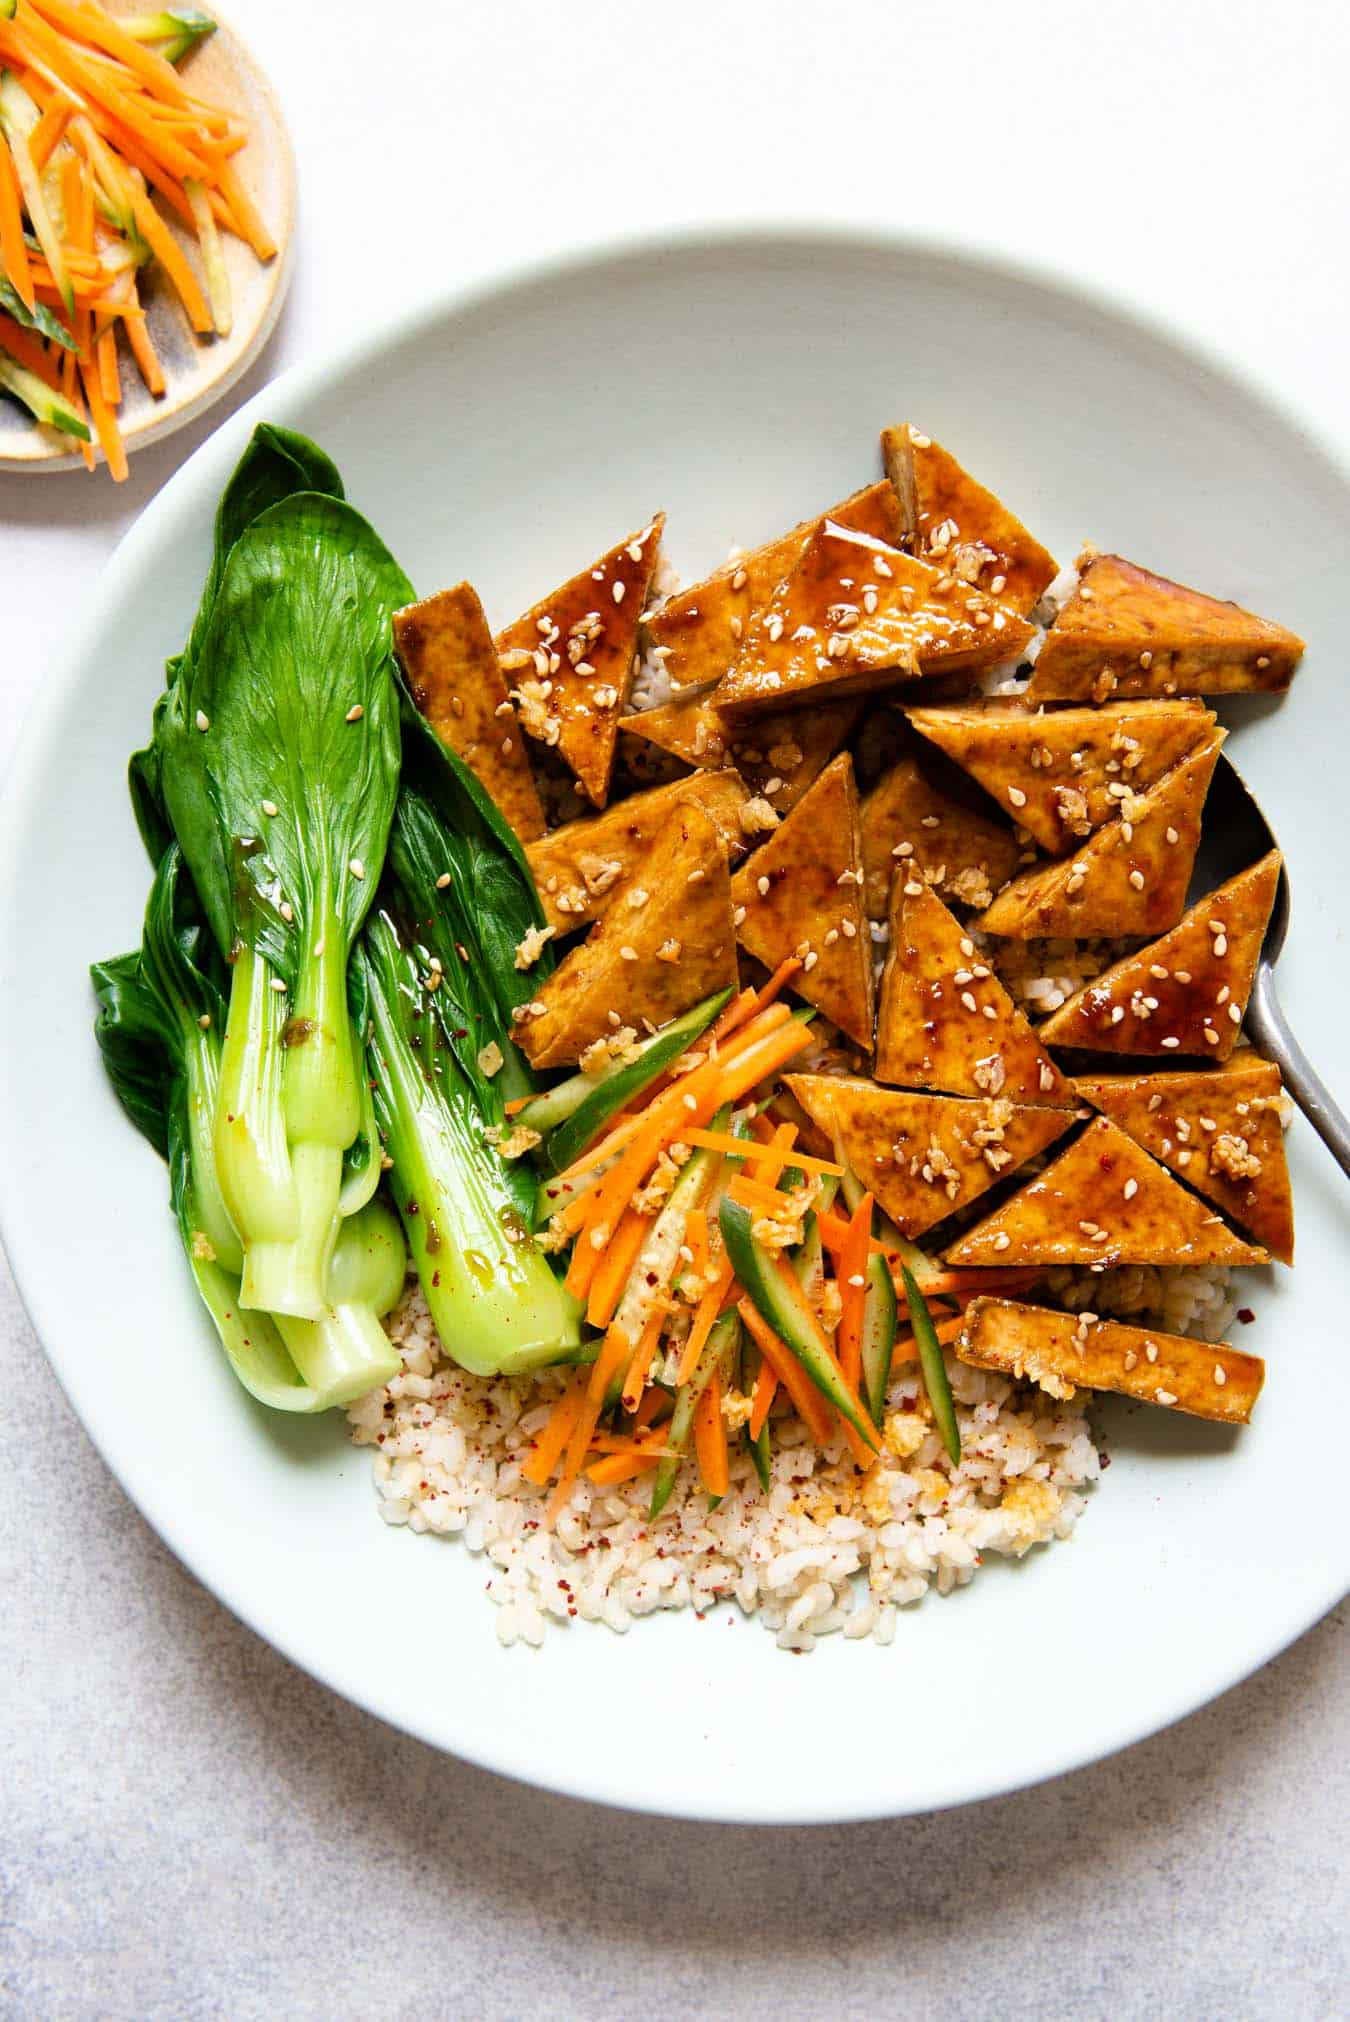 Crispy fried tofu with bok choy and rice